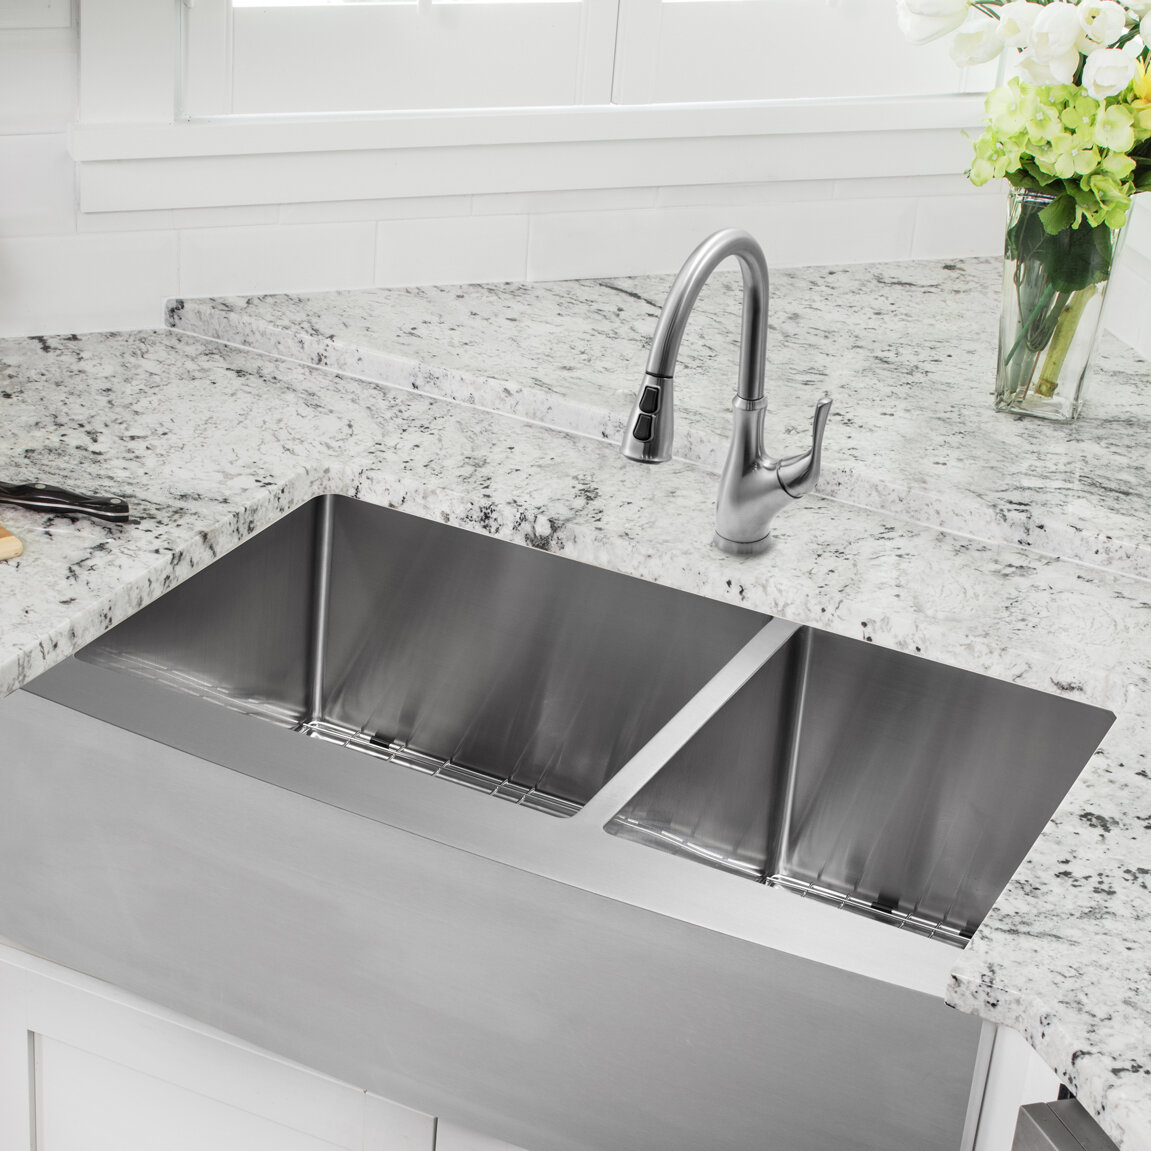 Soleil 36 L X 20 75 W Apron Front 60 40 Double Bowl Stainless